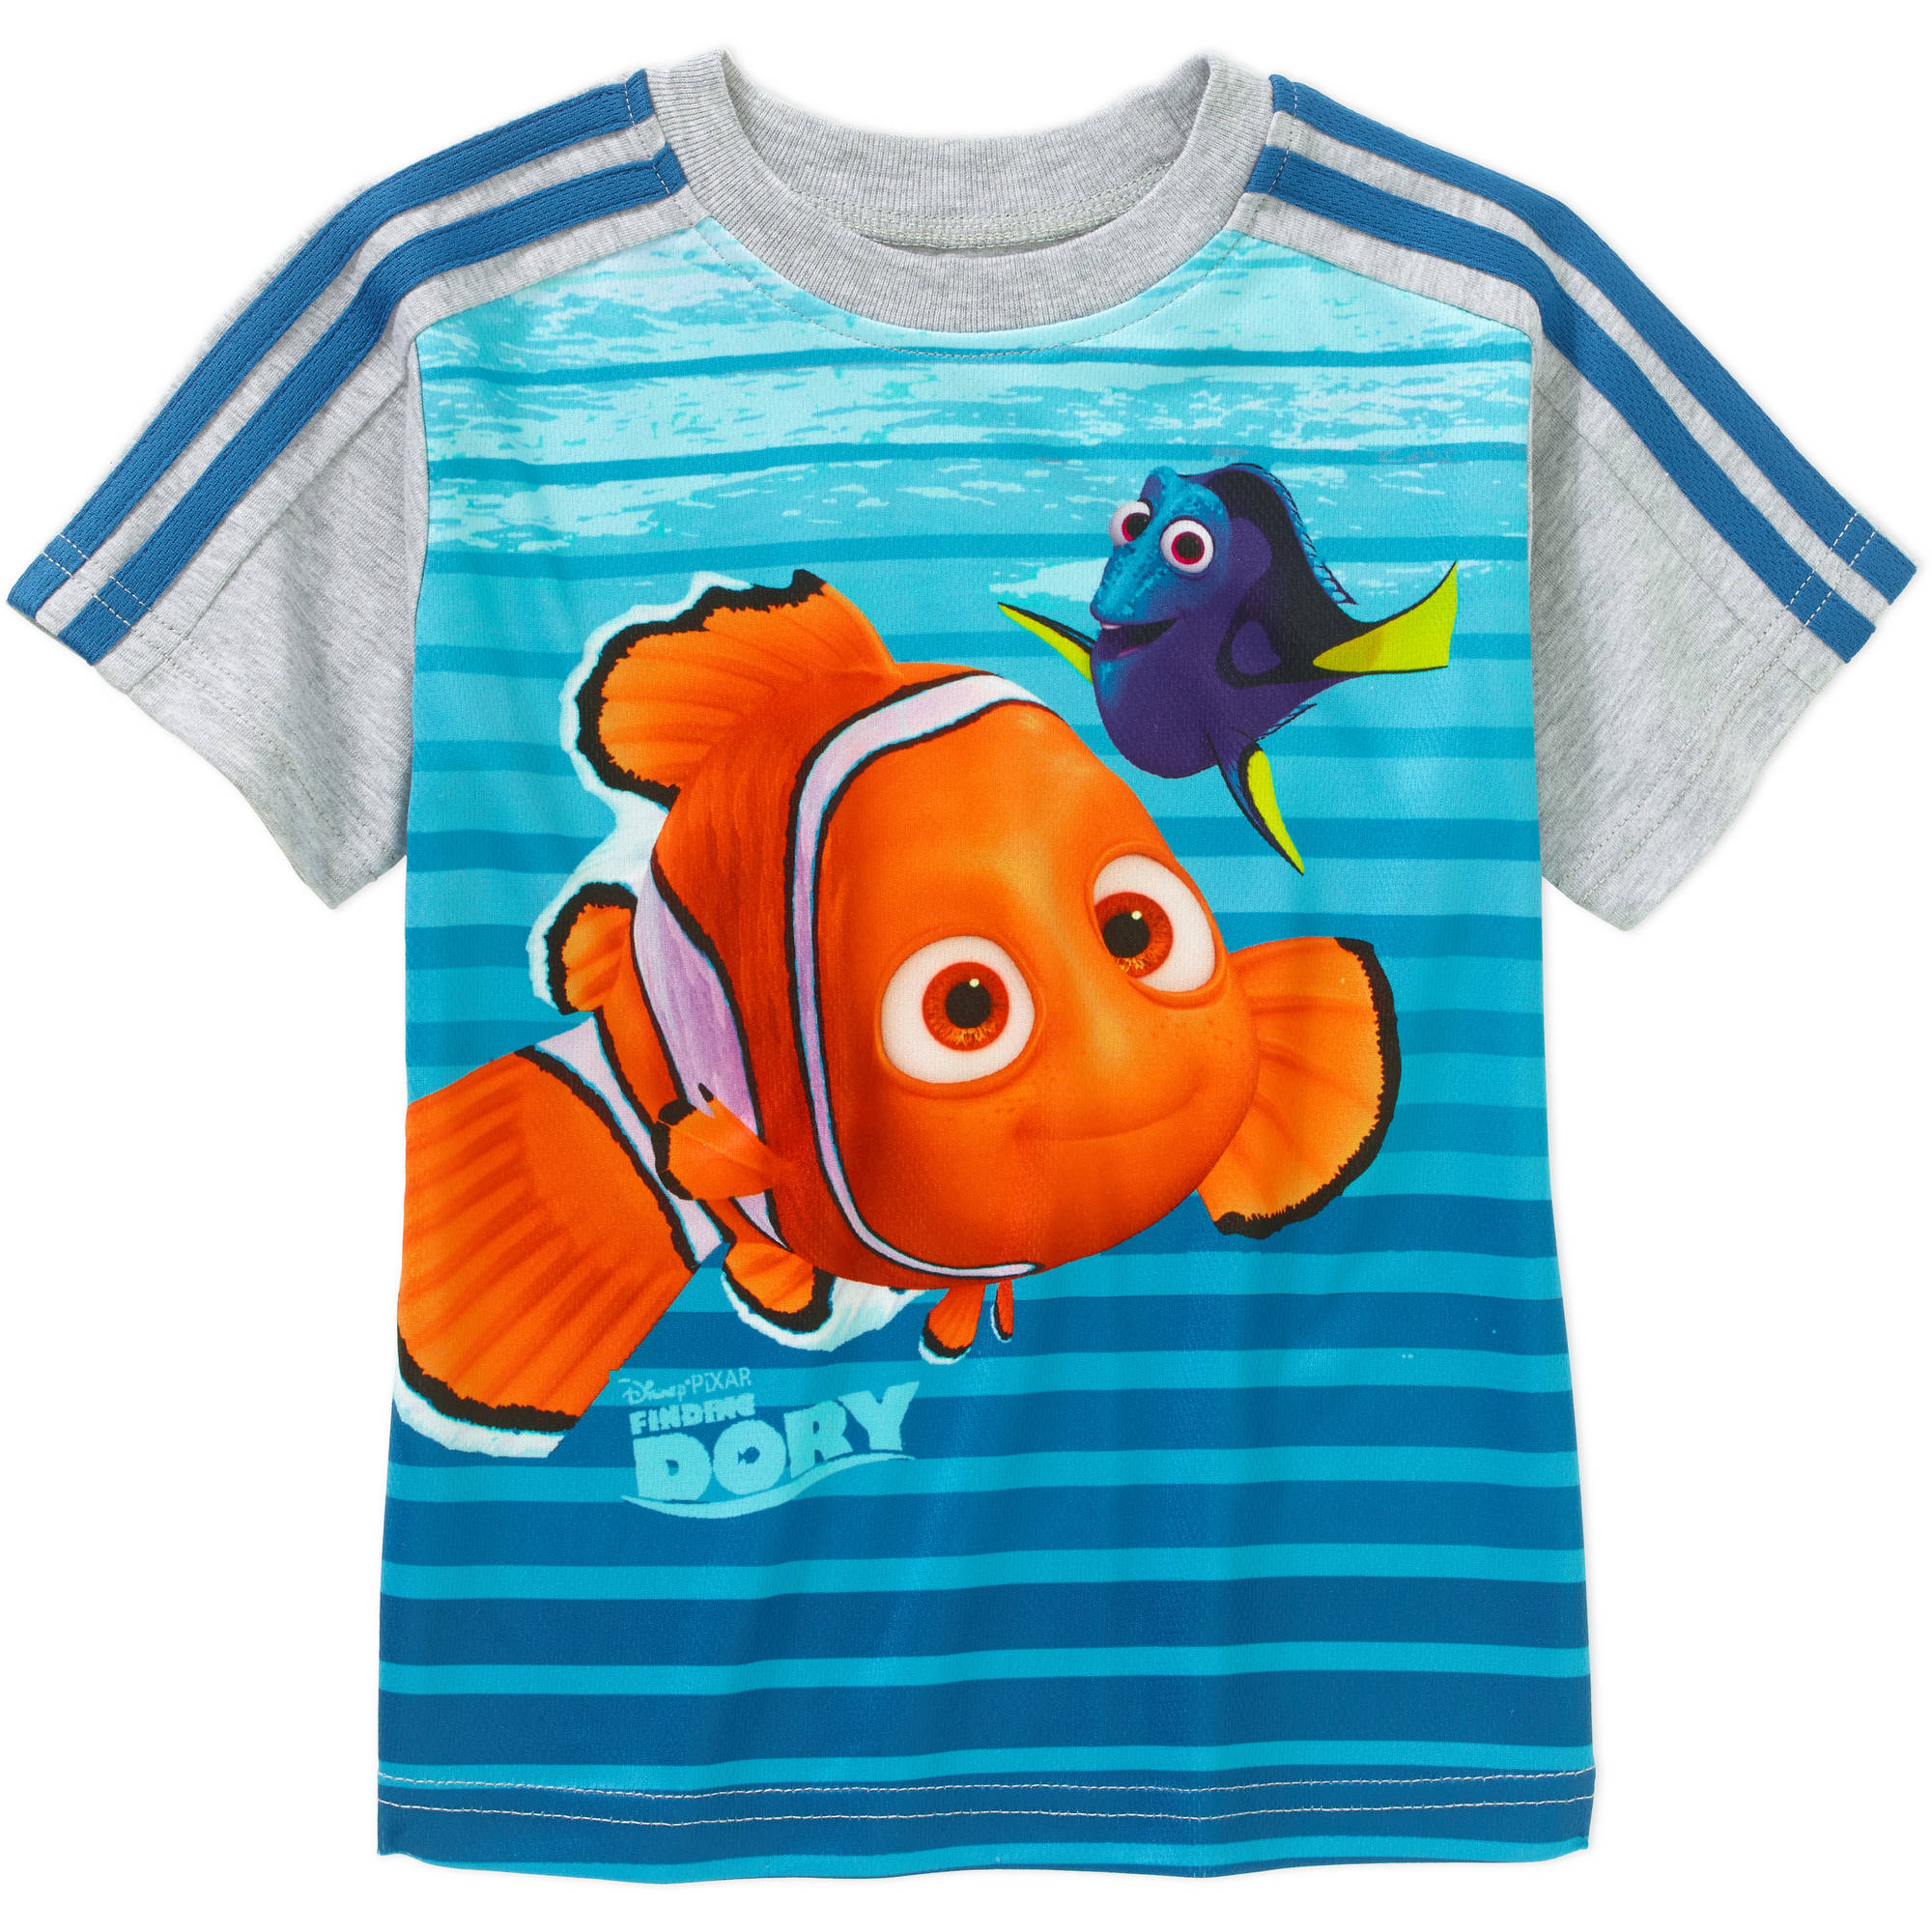 Disney Finding Dory Toddler Boy Graphic Tee Shirt